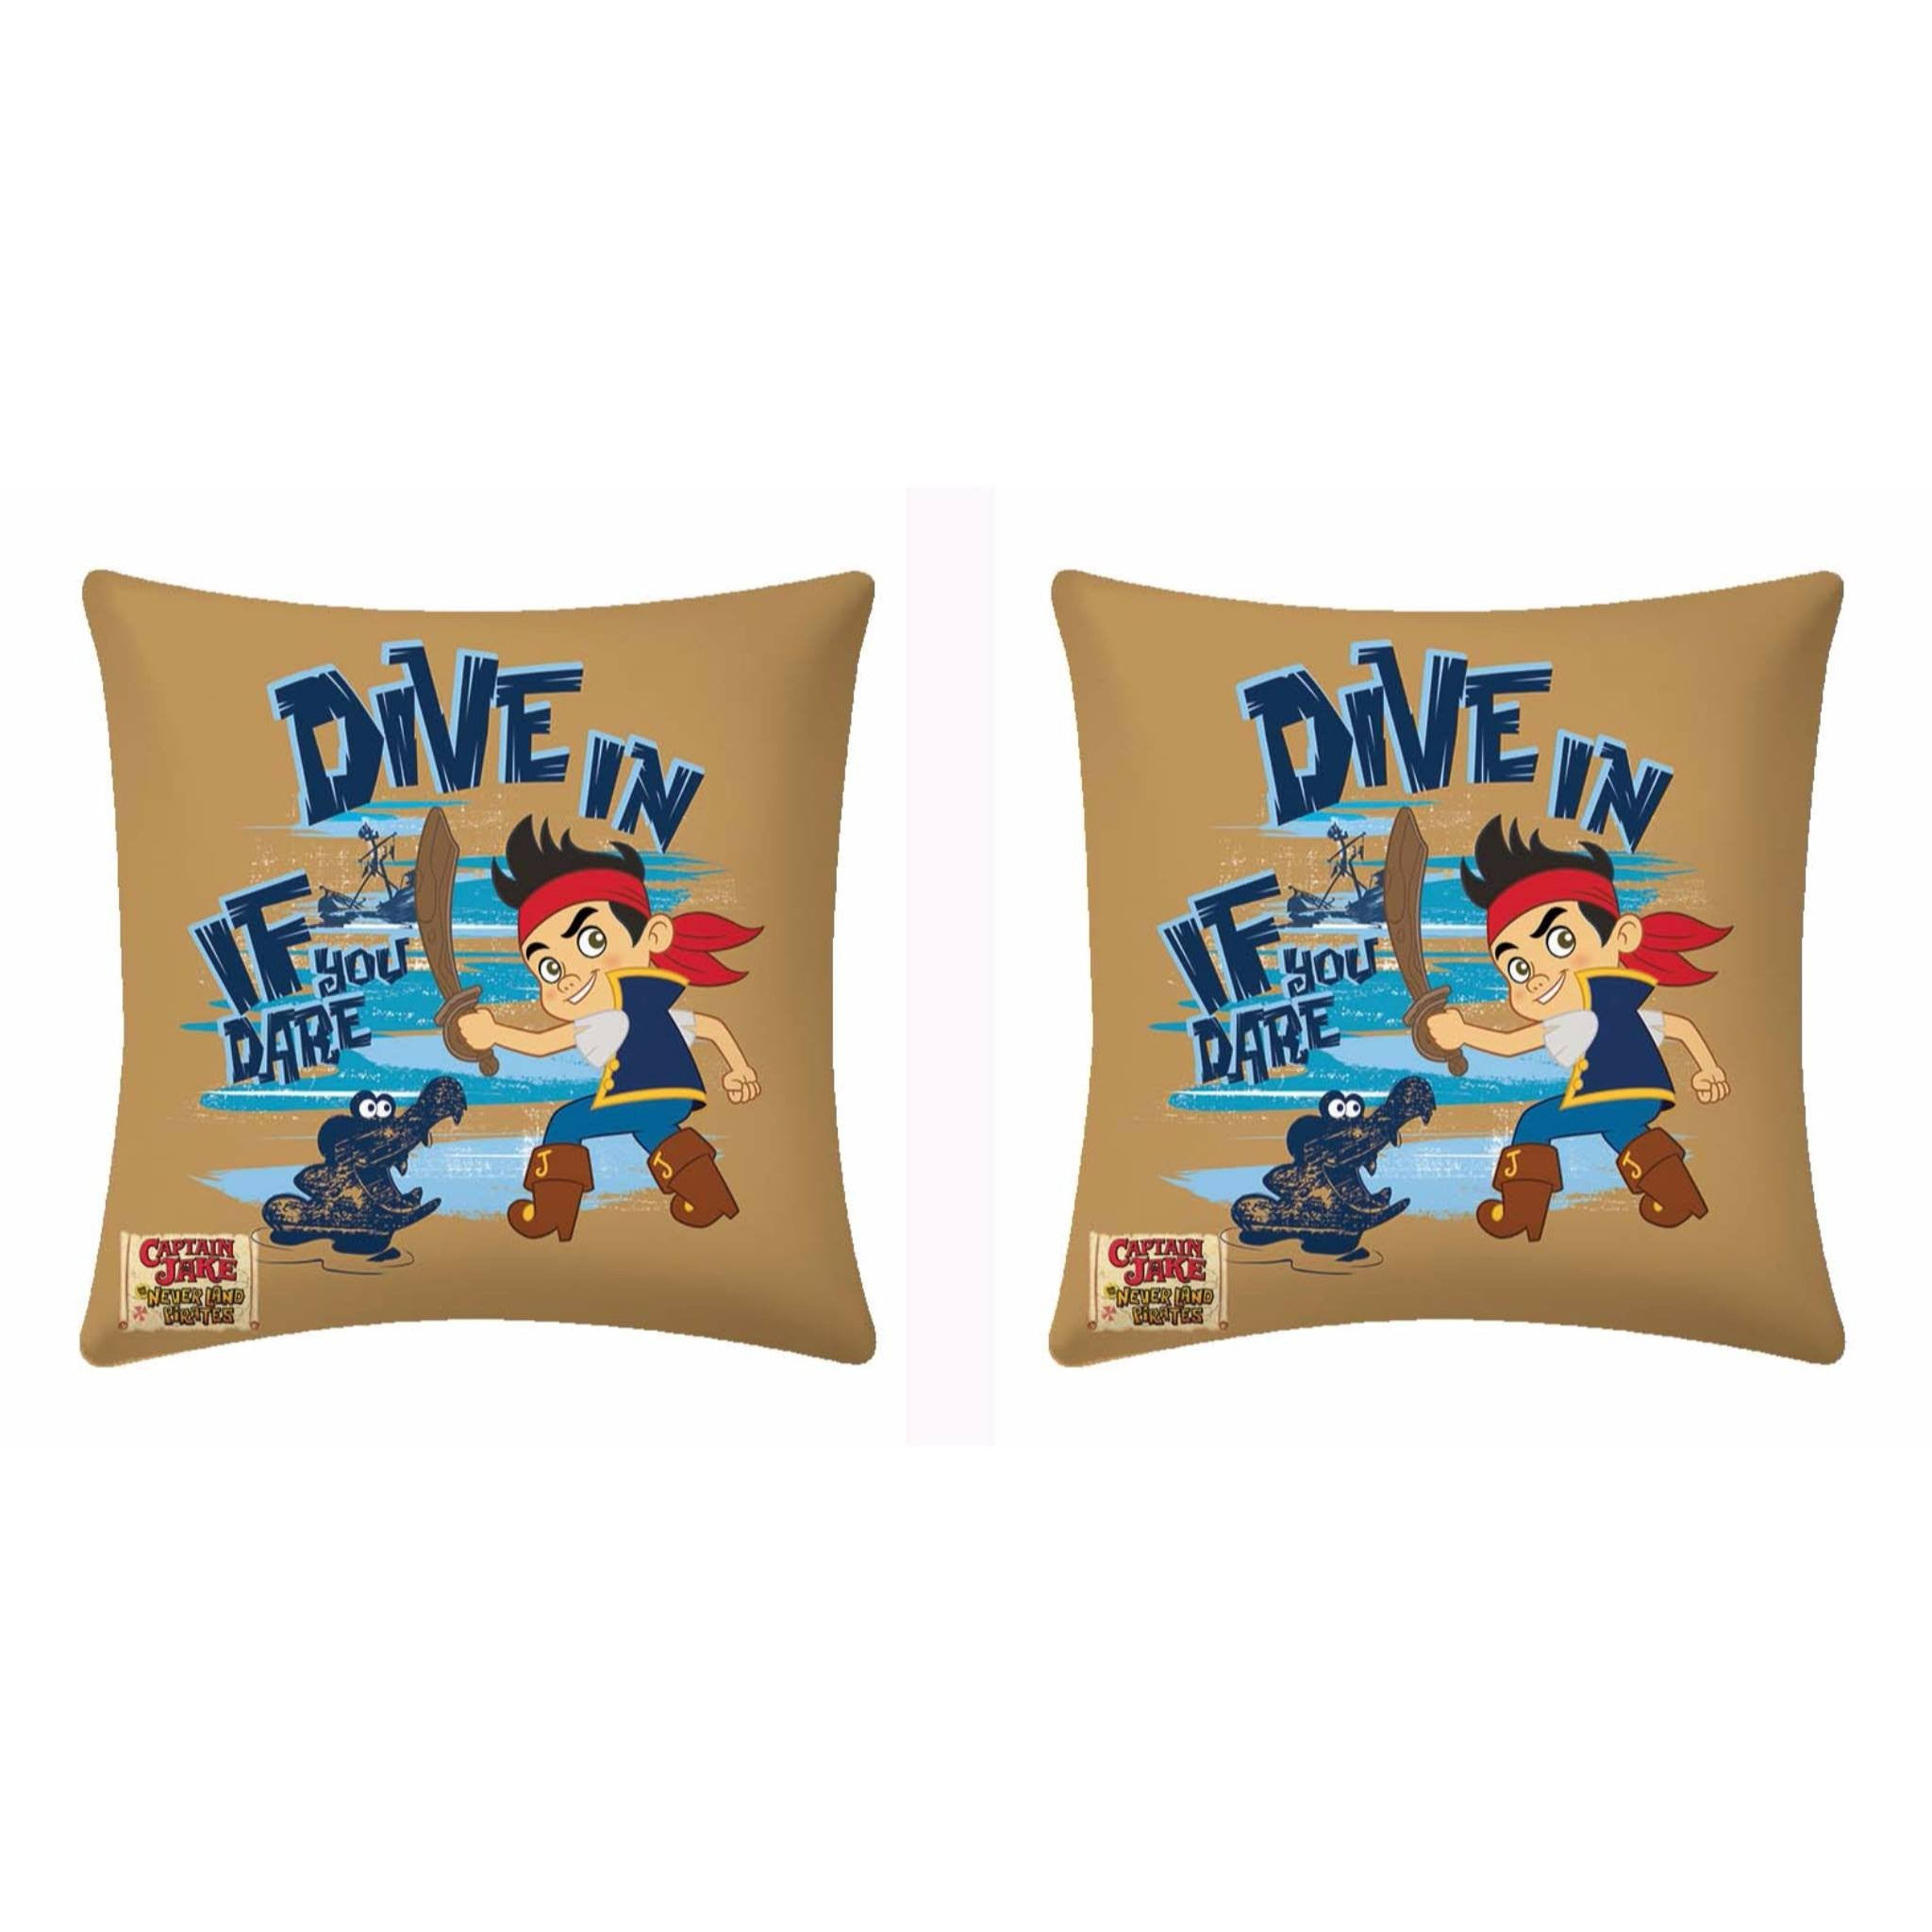 Disney If You Dare Dive In Cushion - Two piece pack - Über Urban Cushion